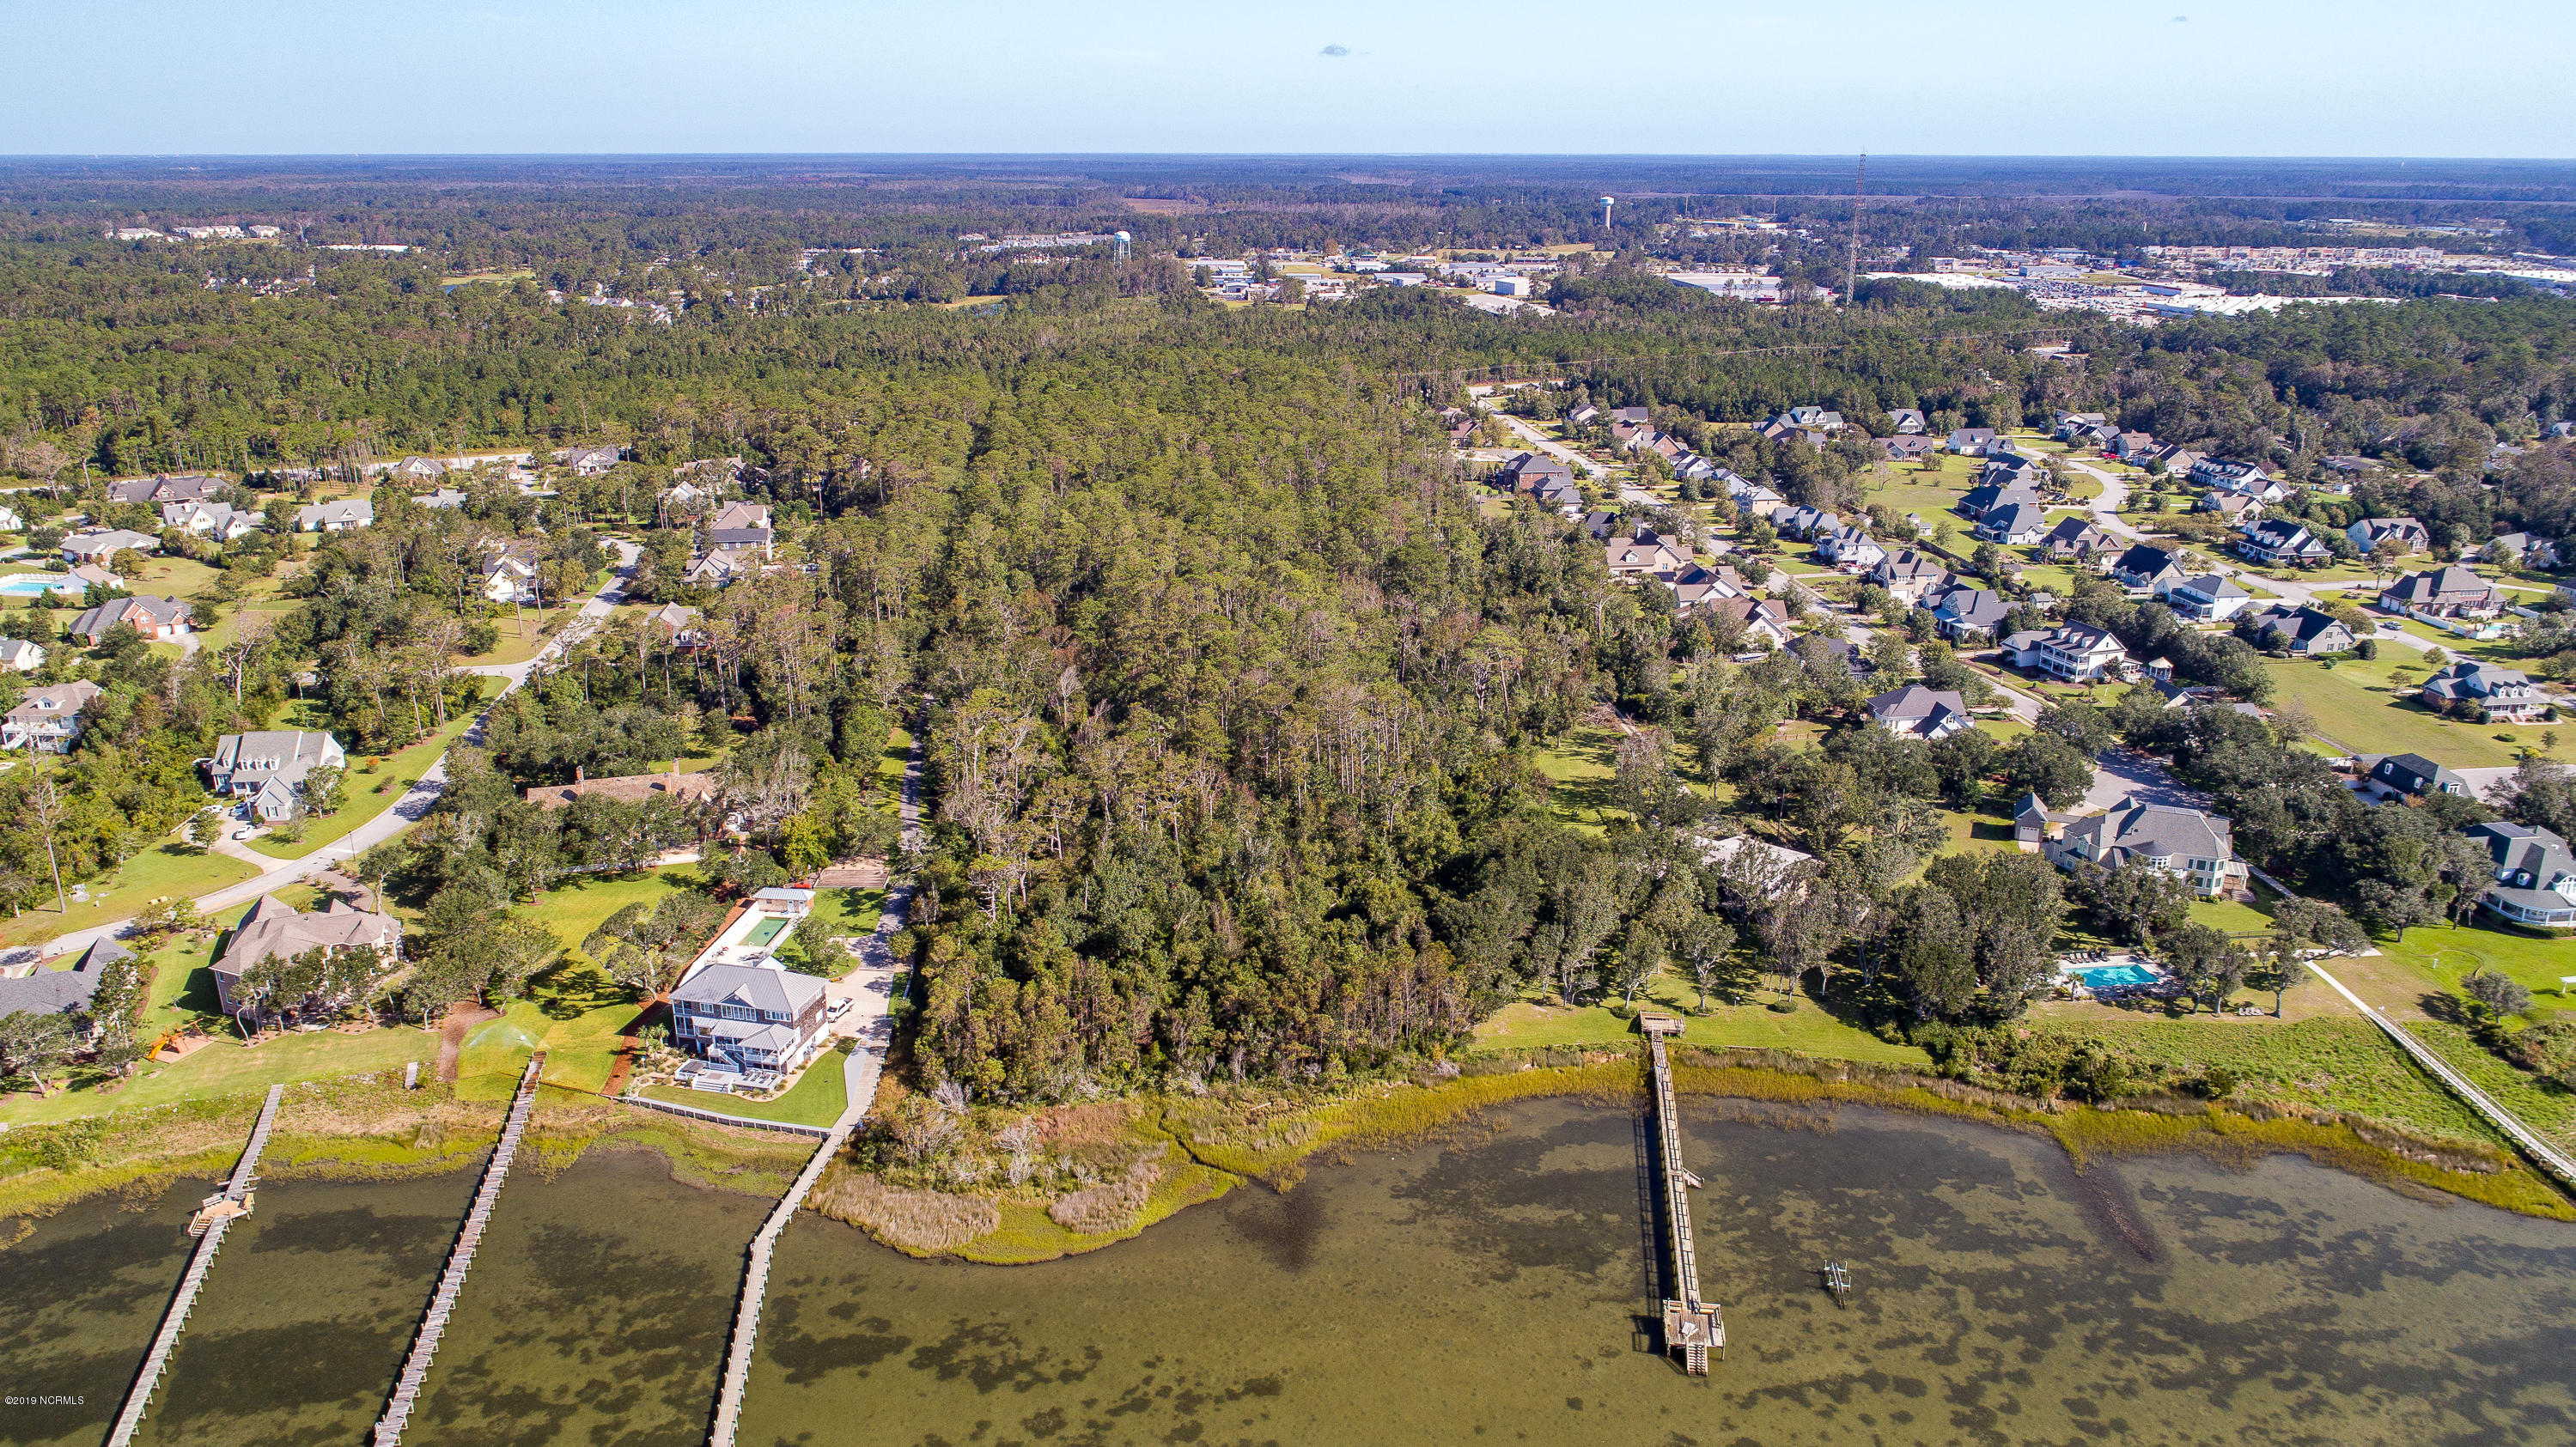 Morehead City, North Carolina 28557, 4 Bedrooms Bedrooms, 12 Rooms Rooms,3 BathroomsBathrooms,Single family residence,For sale,100186259